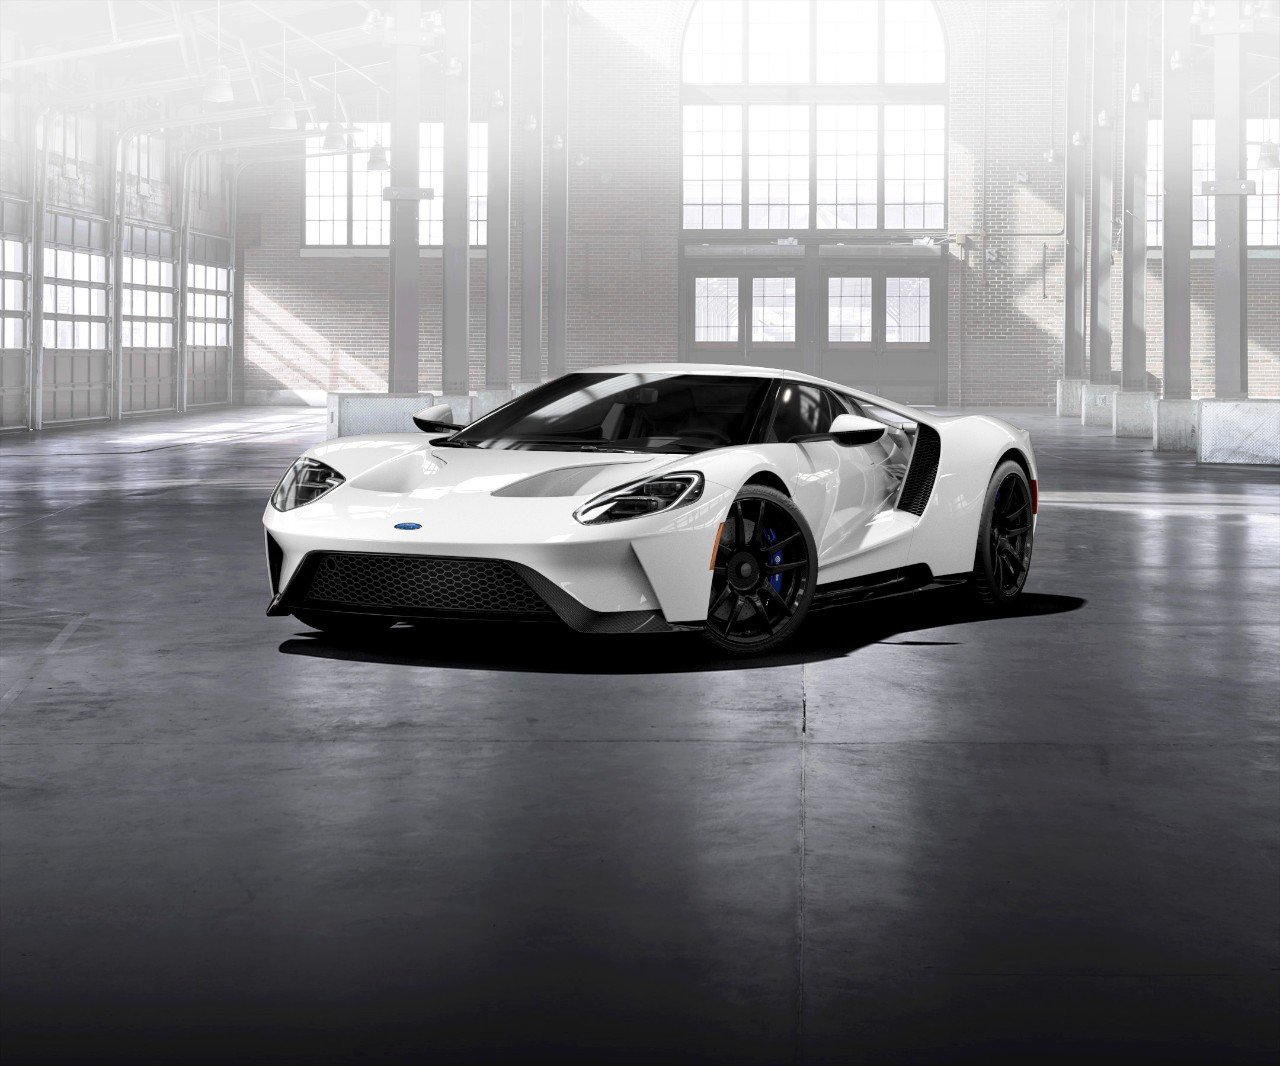 Ford Designer Who Worked On Gt Succumbs To Cancer